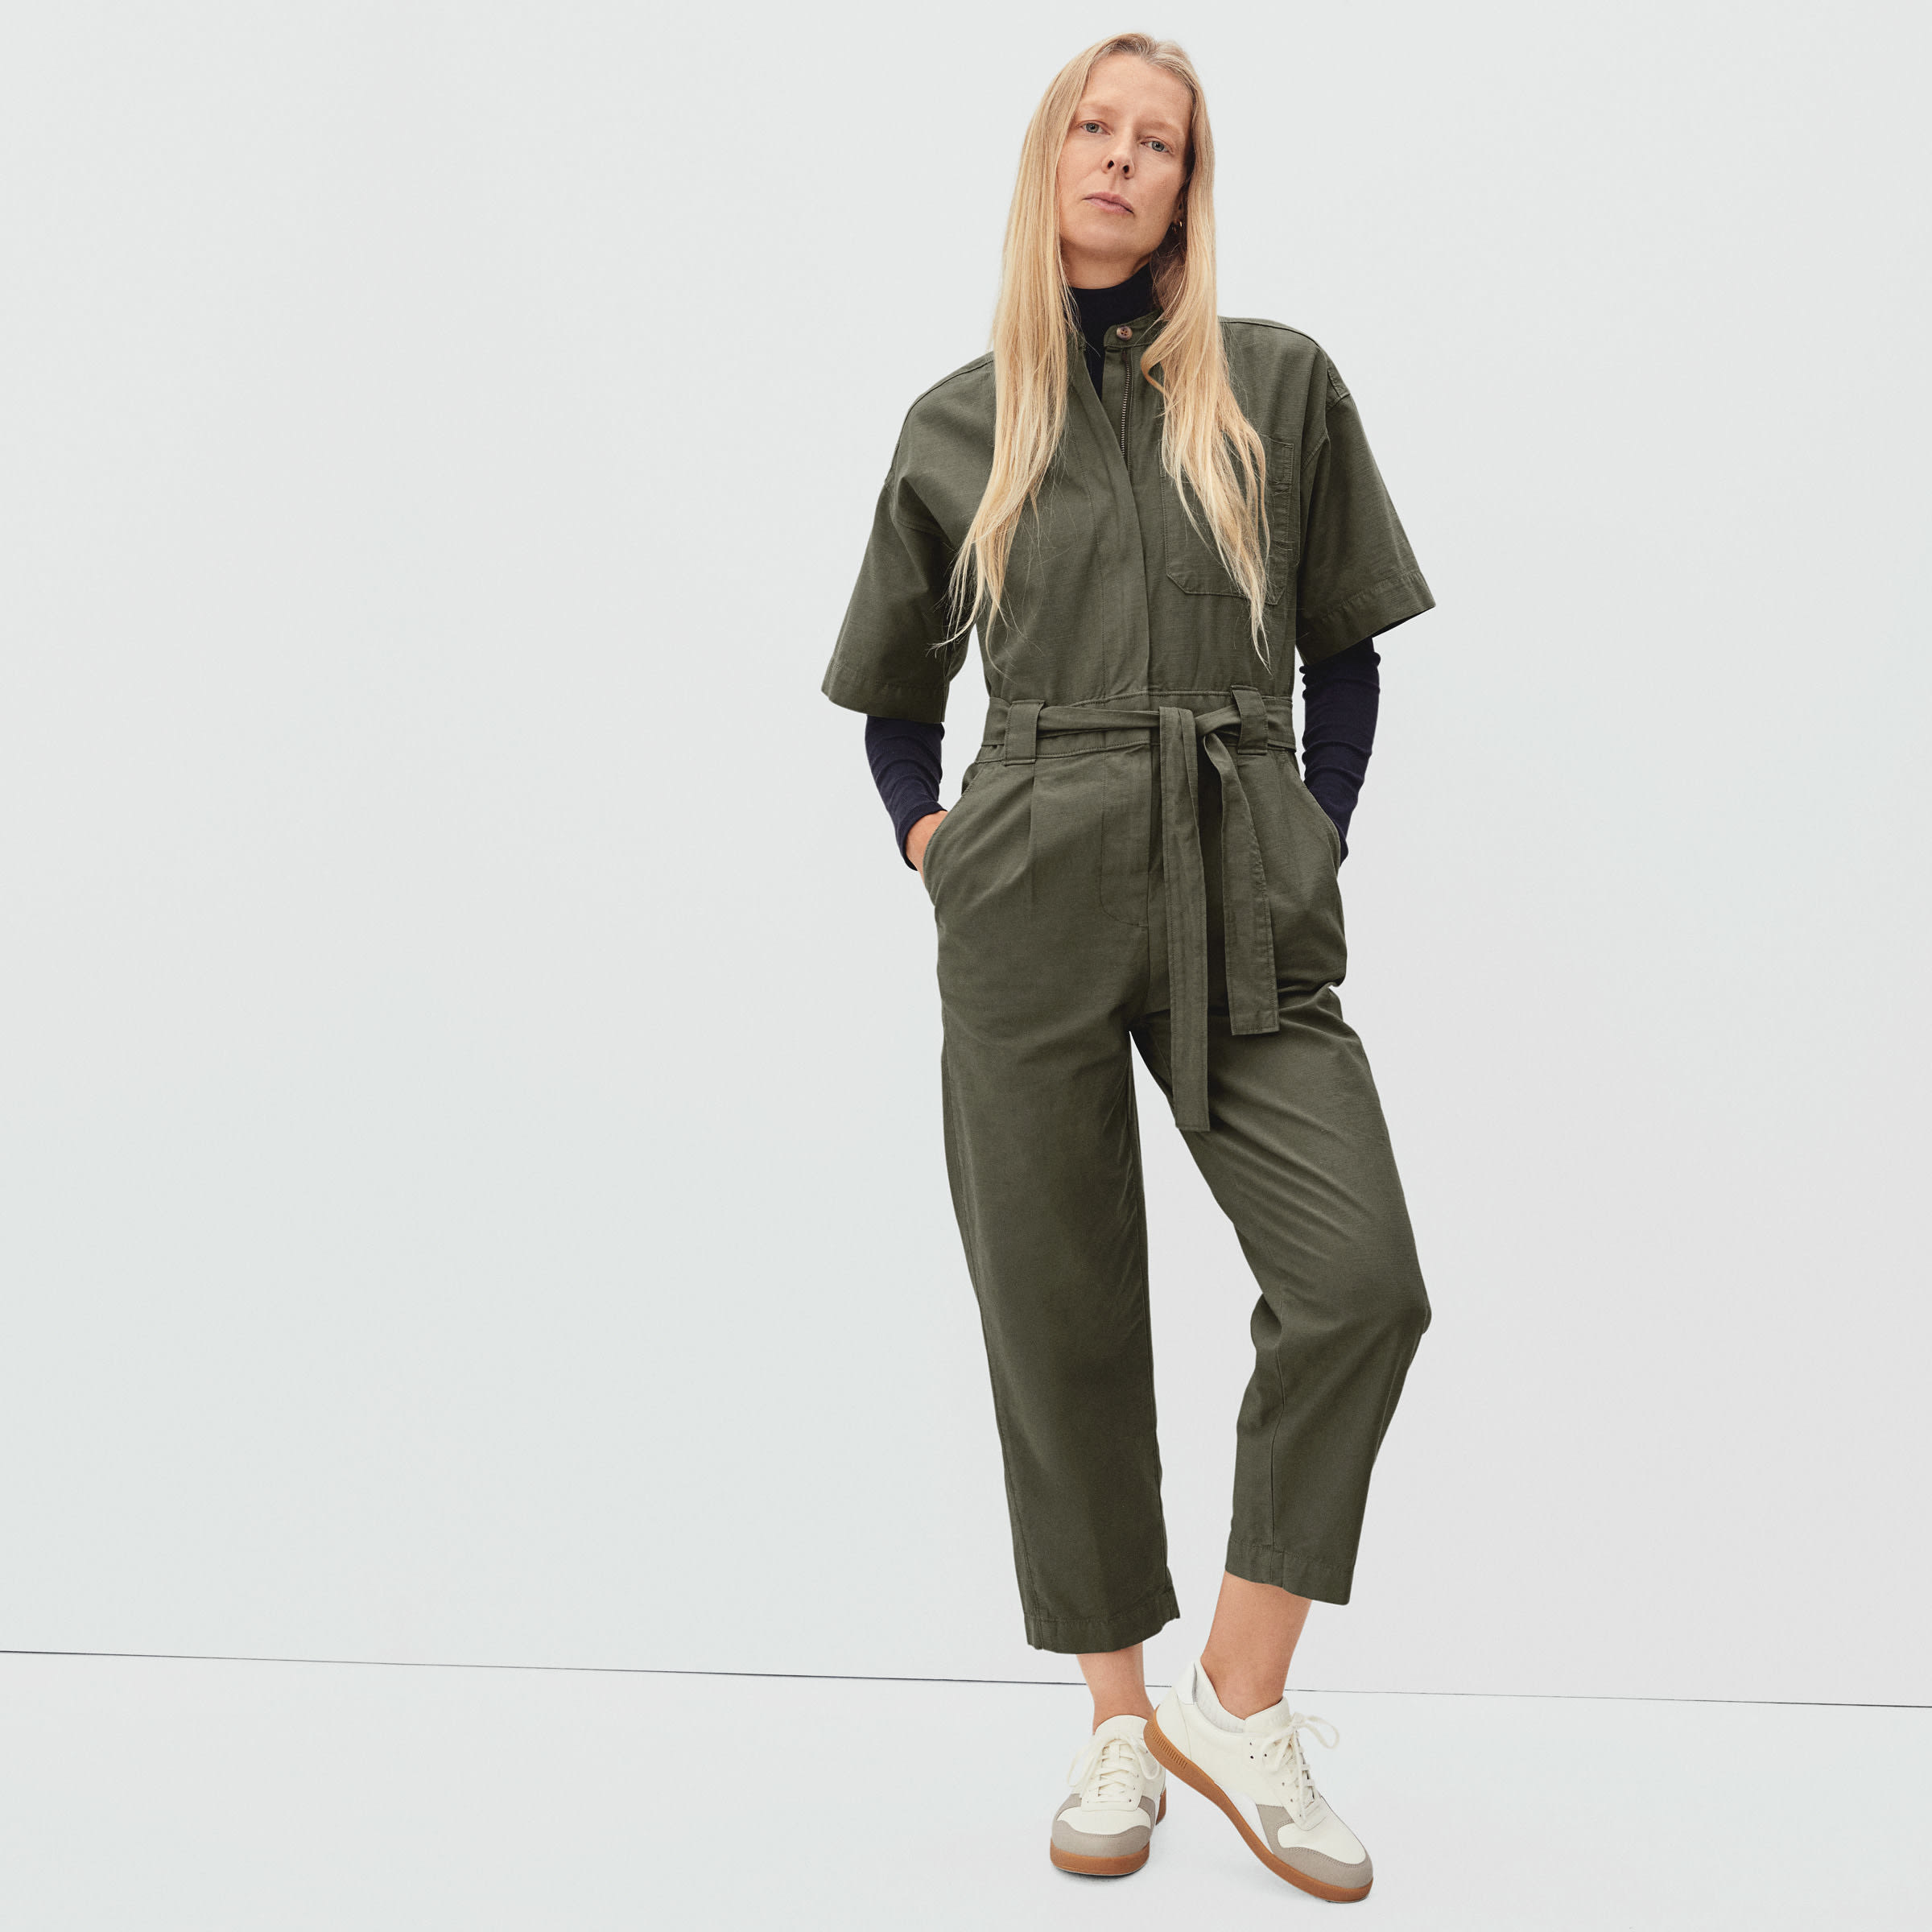 model wearing the green ankle-length short-sleeved jumpsuit